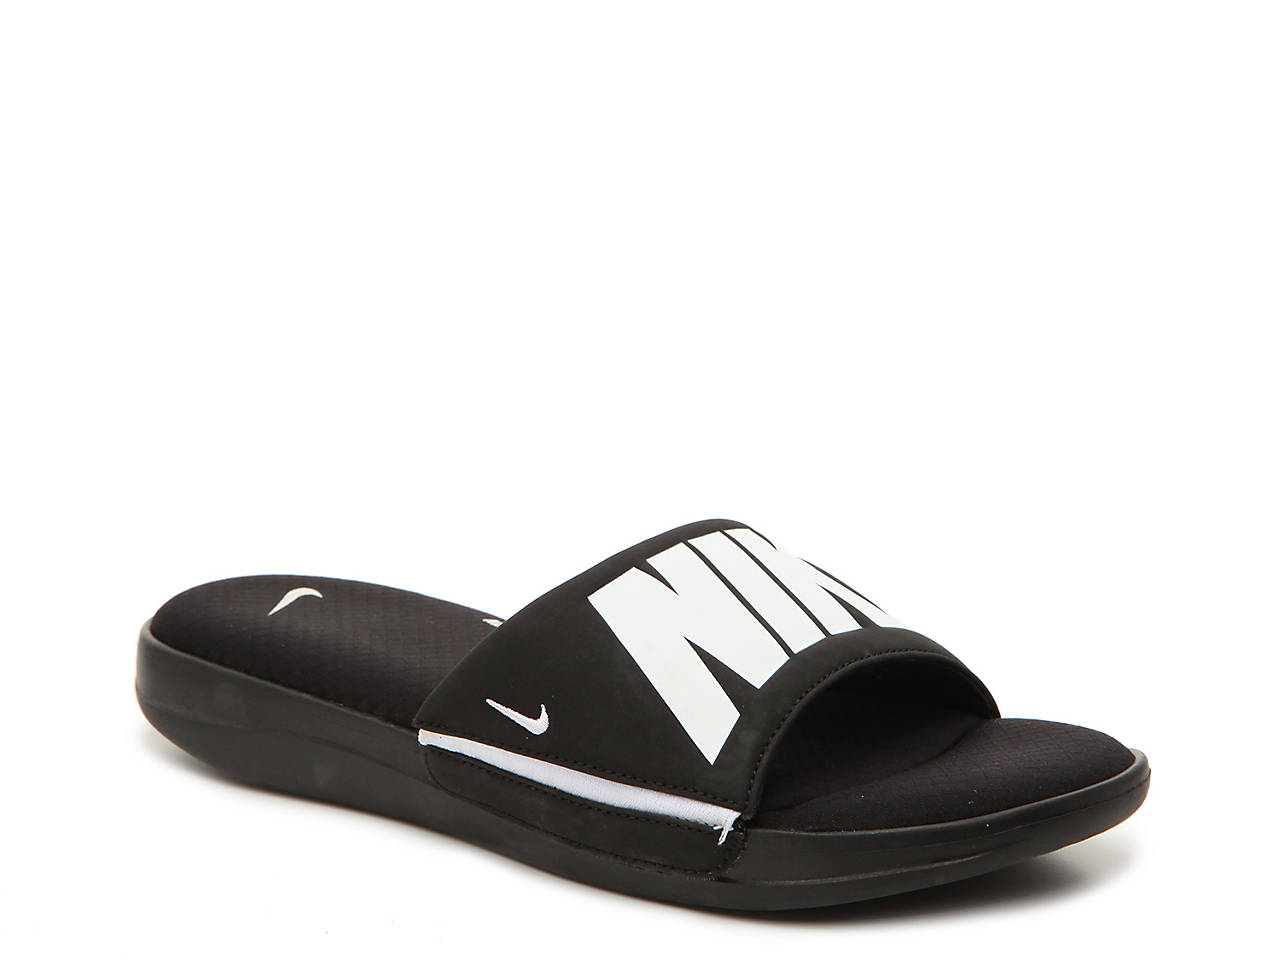 new product 137e1 0492a Nike. Ultra Comfort 3 Slide Sandal - Men s